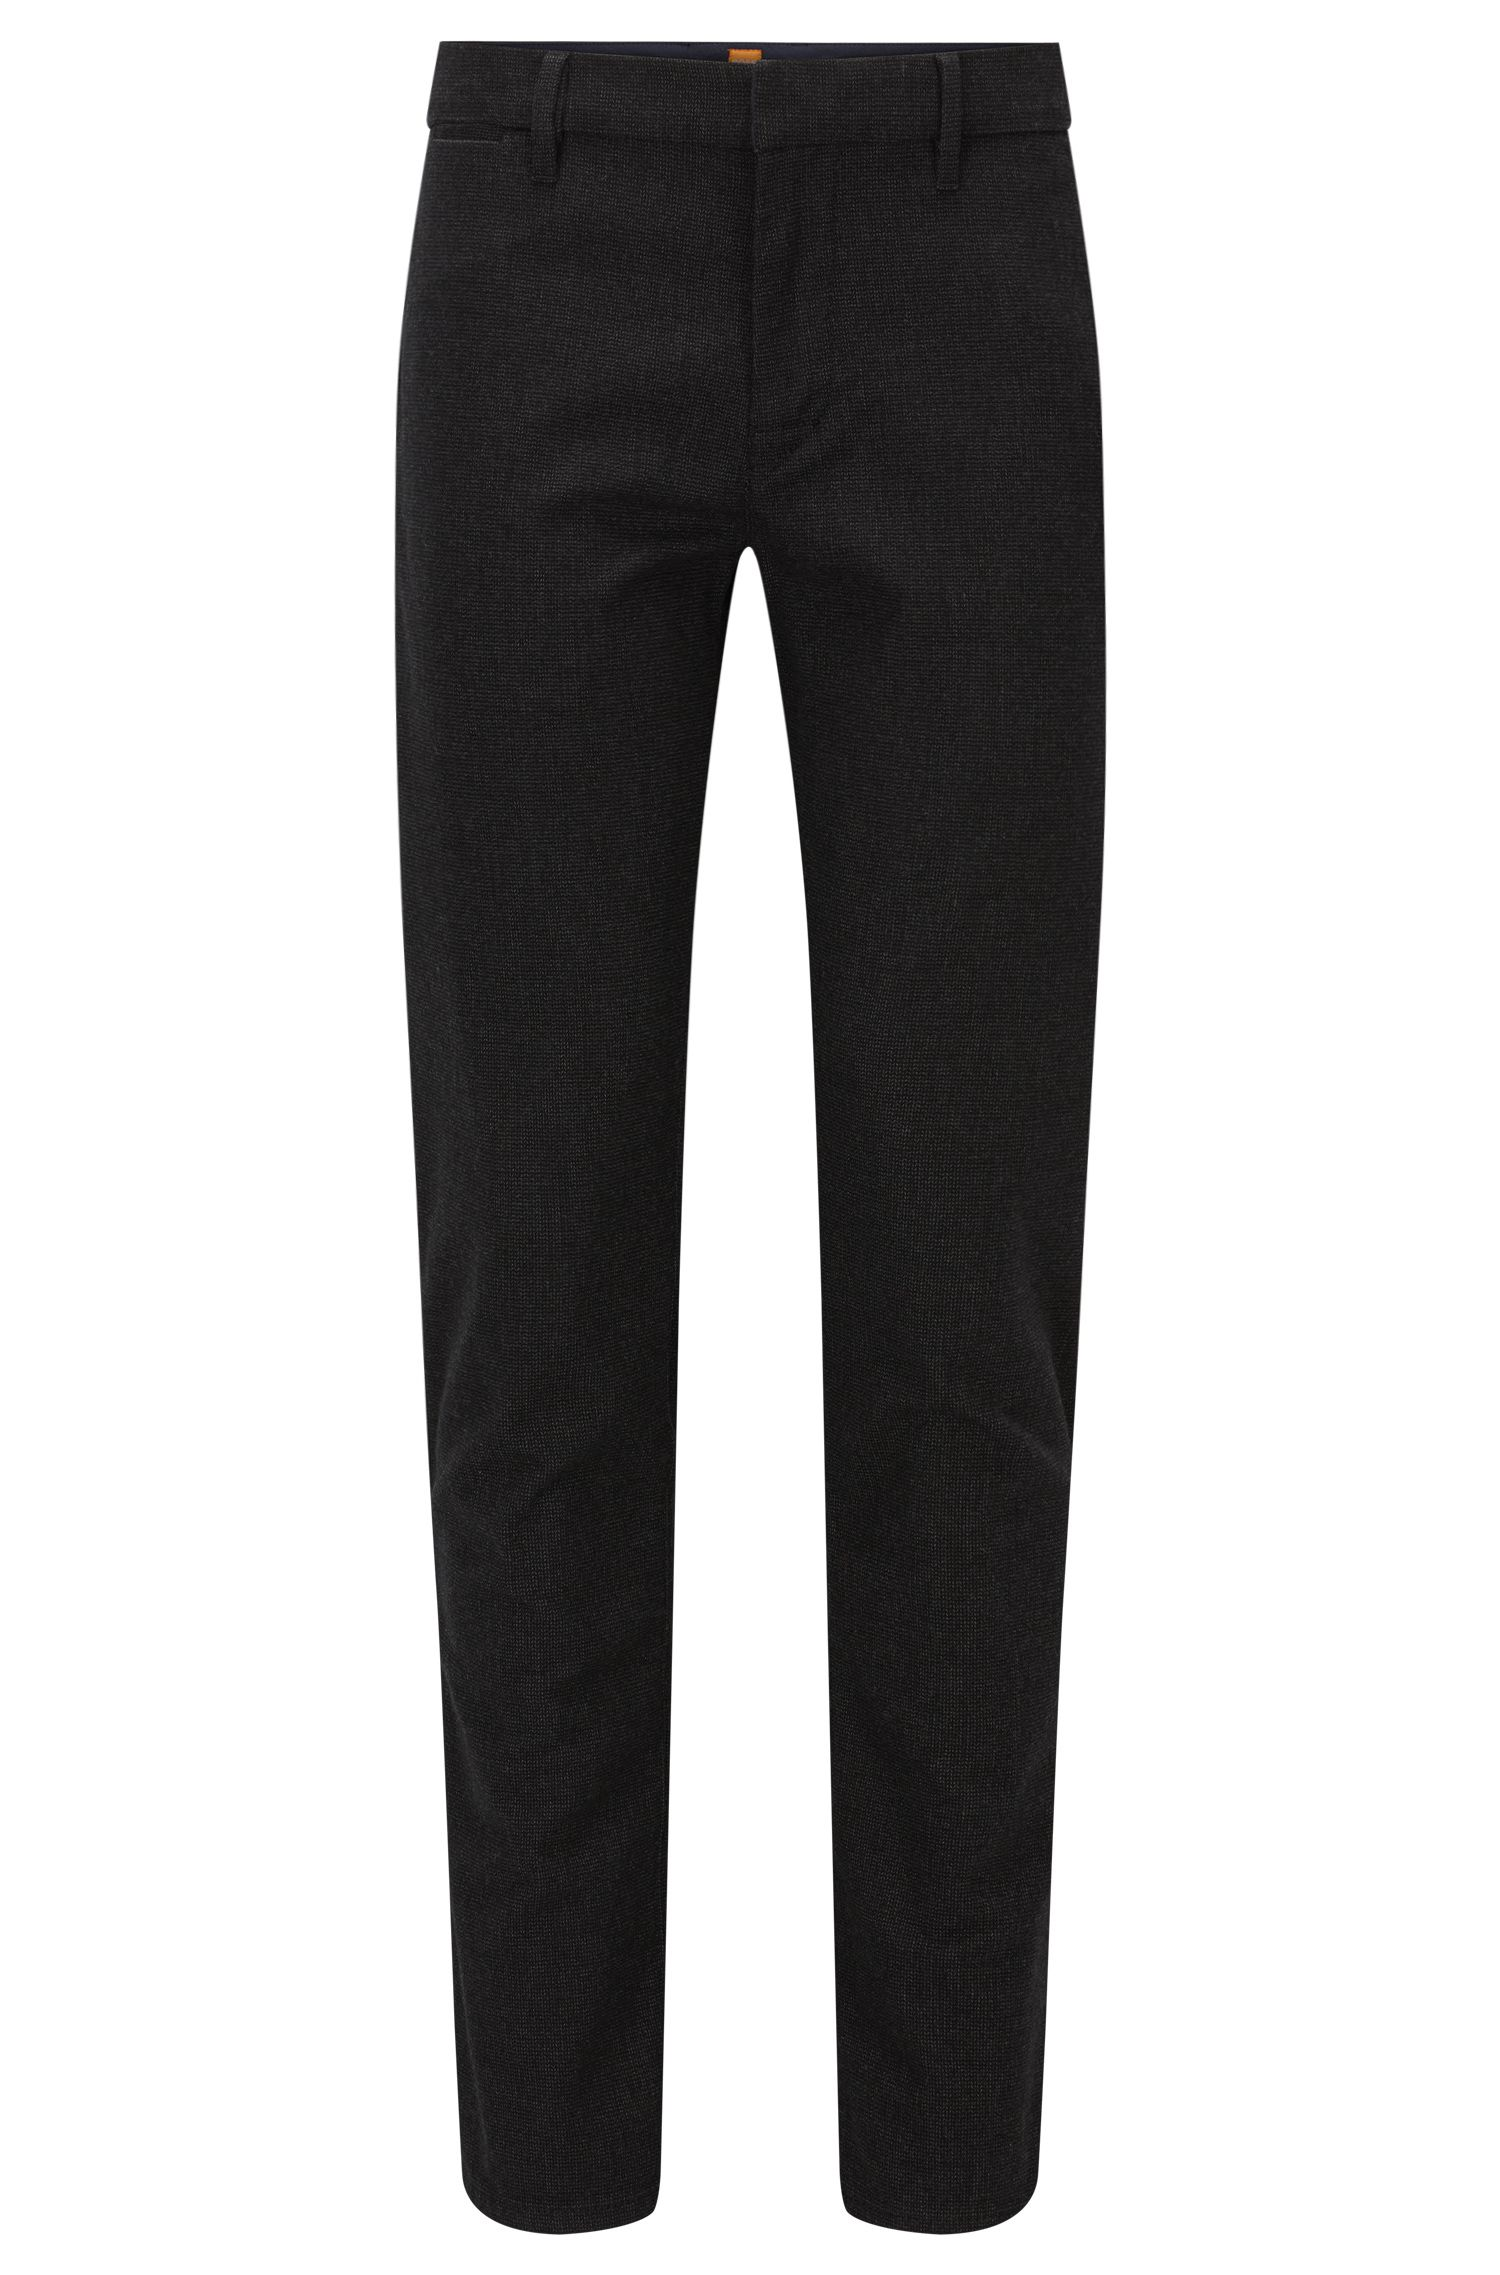 Cotton-blend trousers in a slim fit